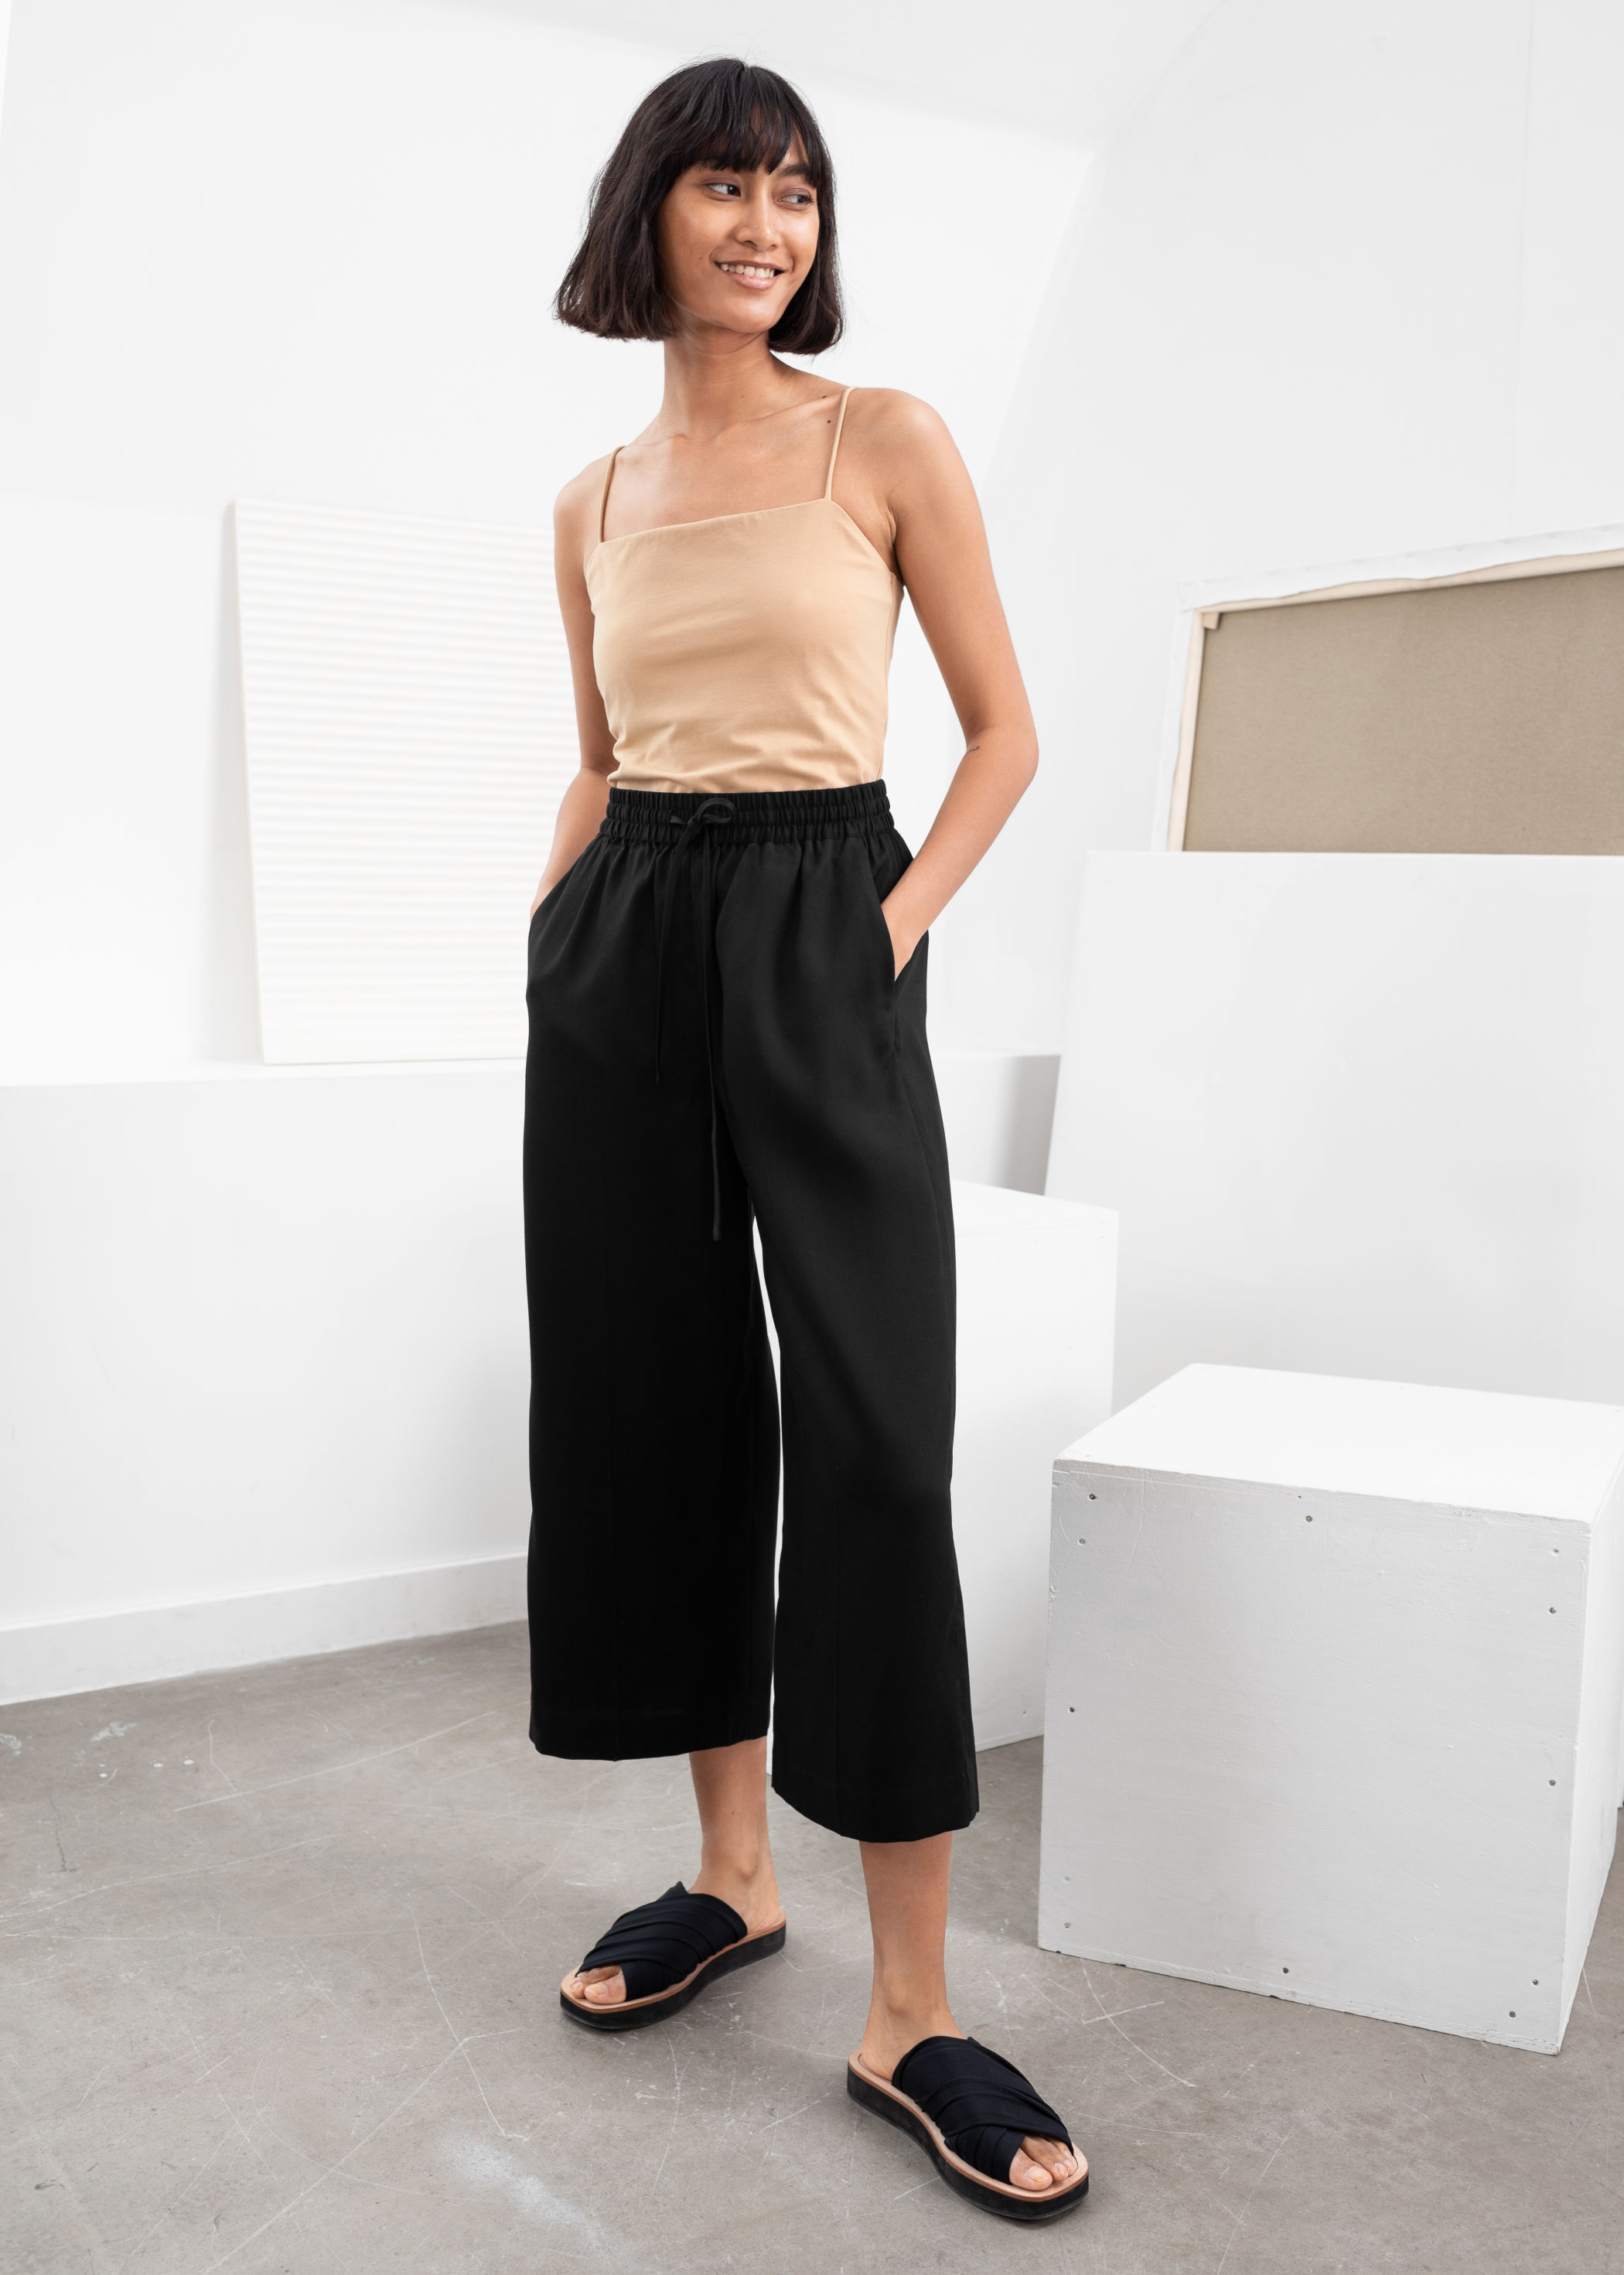 & Other Stories Lyocell drawstring culottes £65